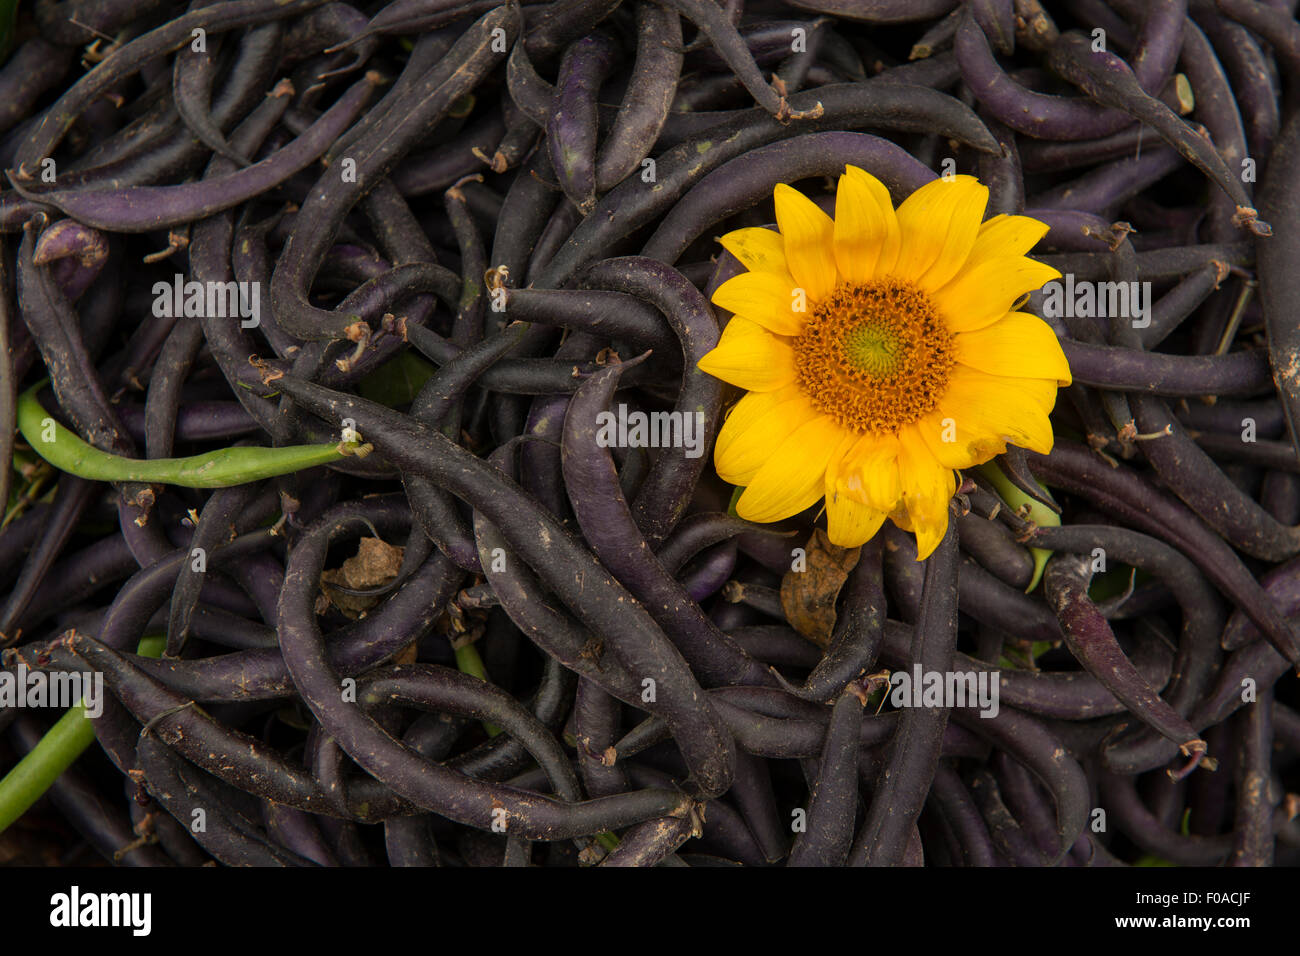 Pile of beans with yellow flower, close-up - Stock Image